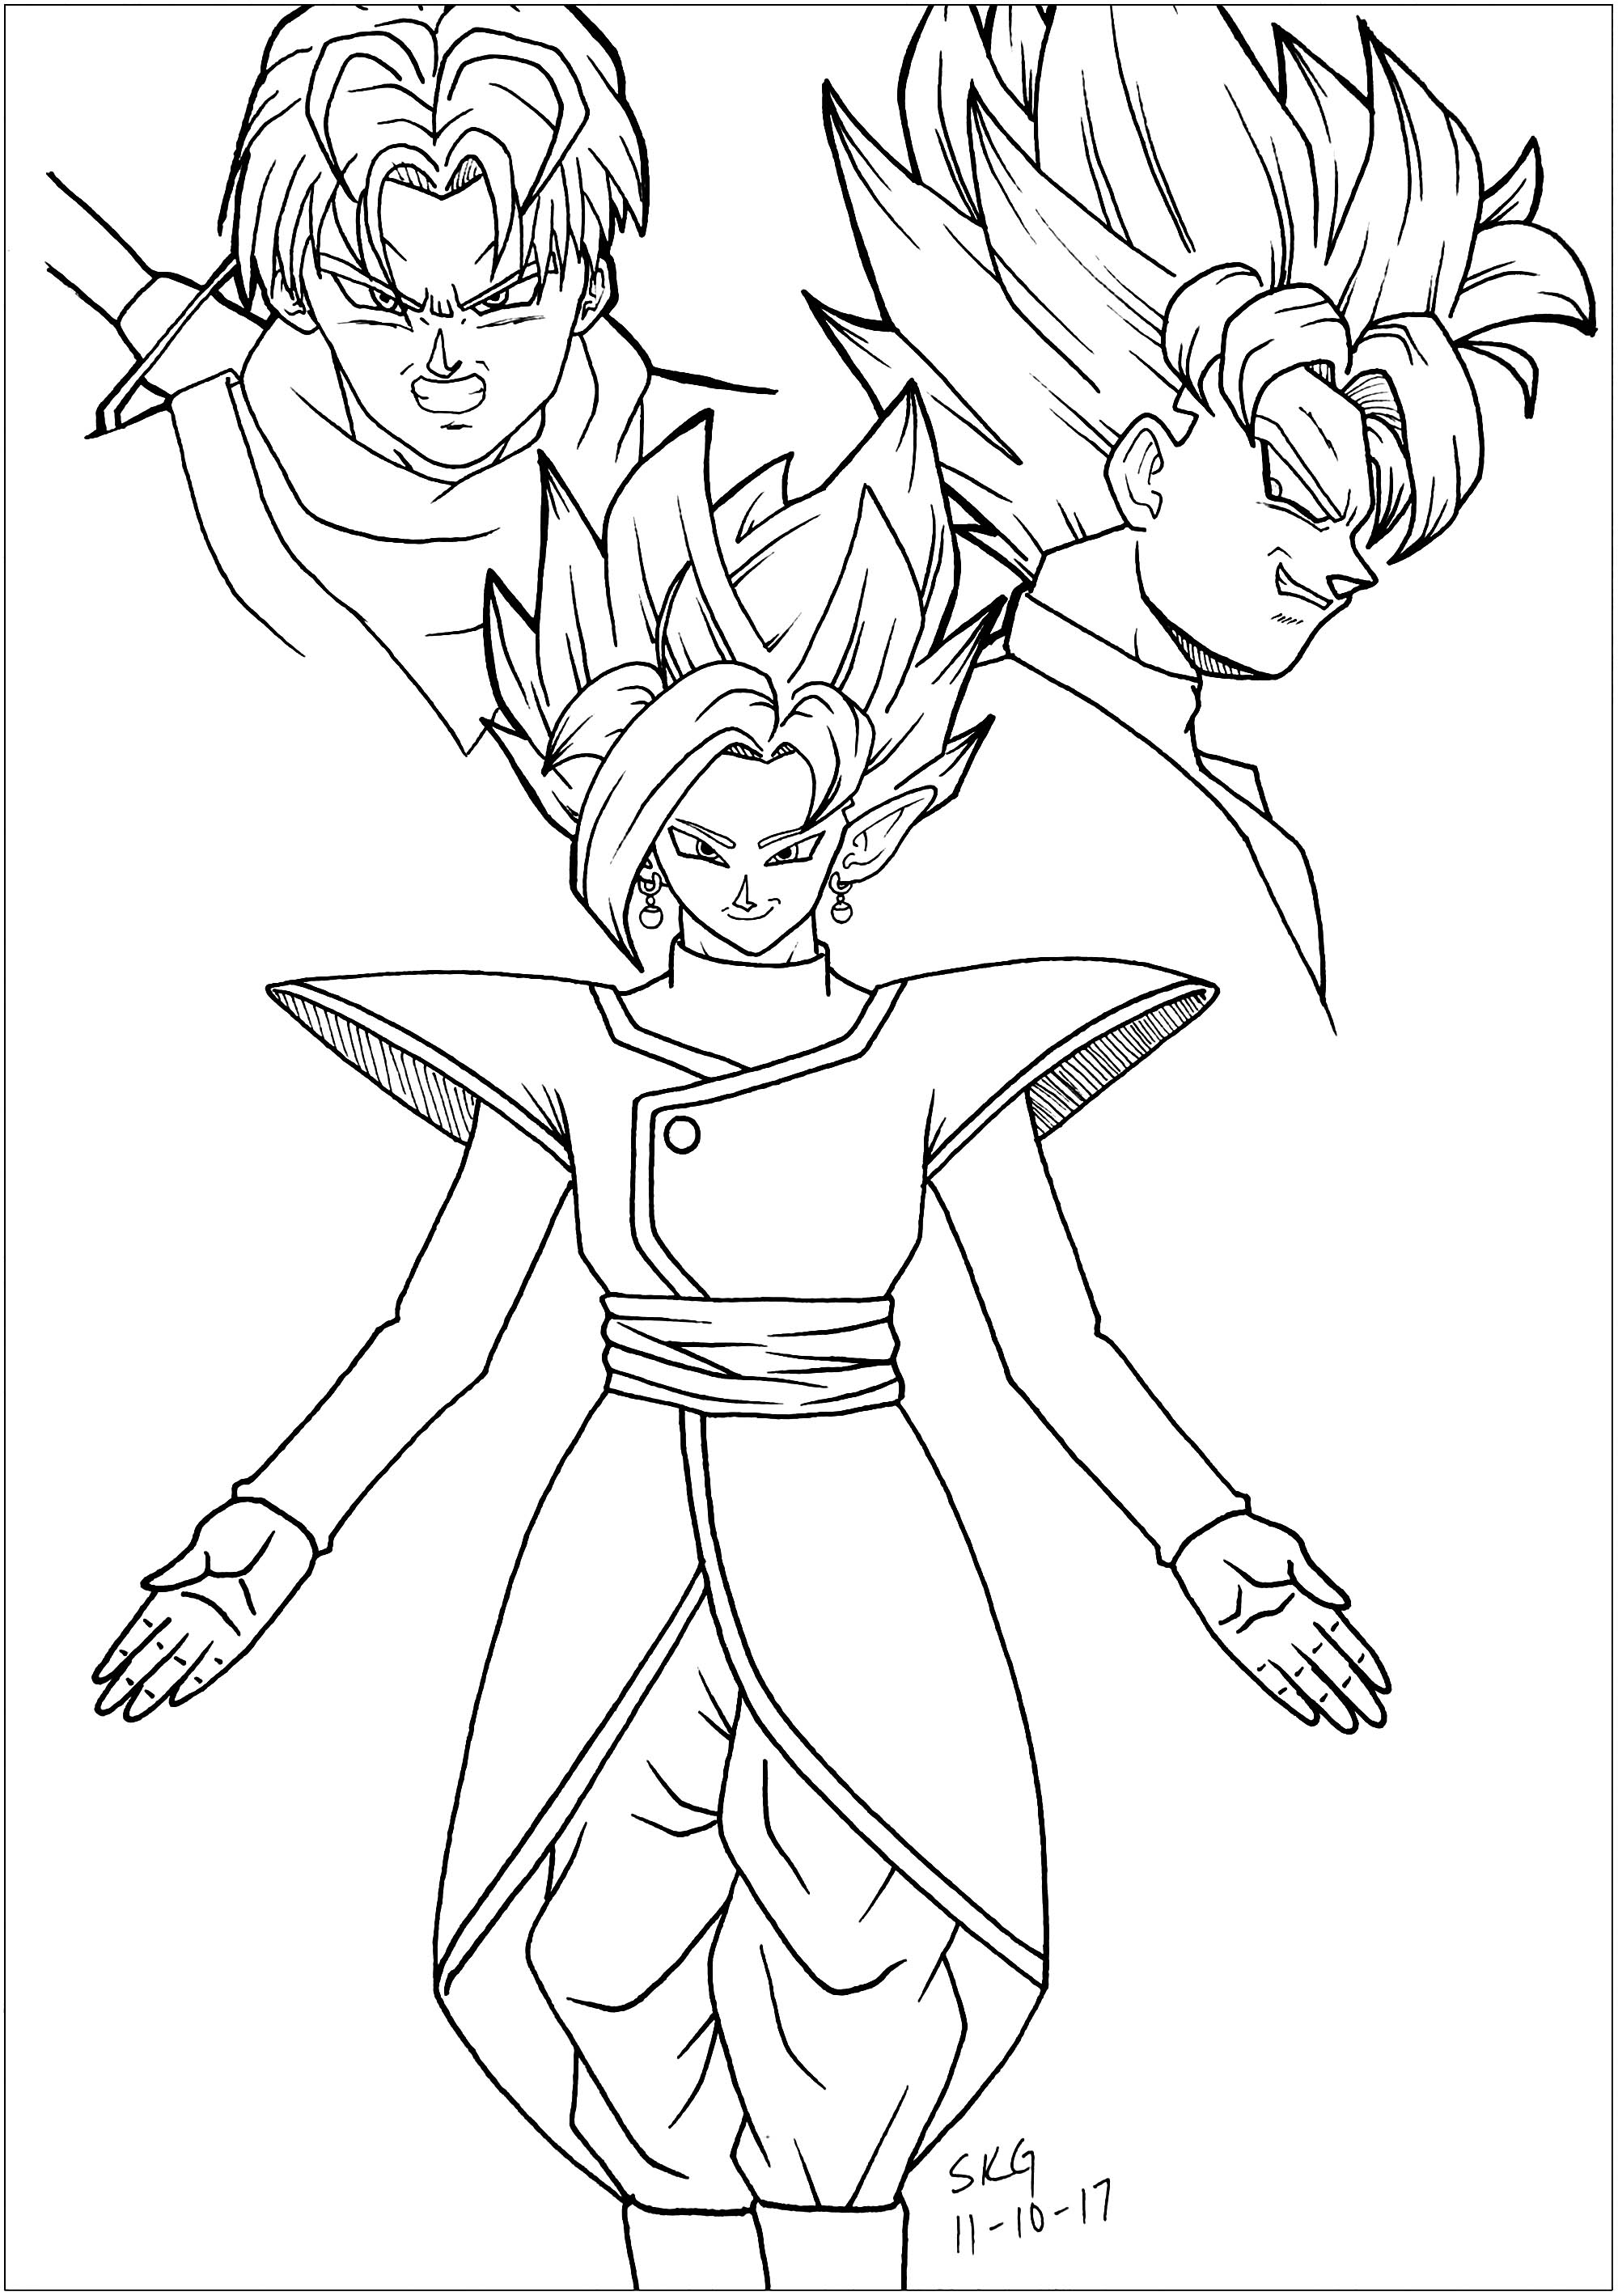 Coloring Dragonball Super Zamasu Trunks And Black Goku on 2000 Mitsubishi Montero Sport 3 0 Belt Diagram